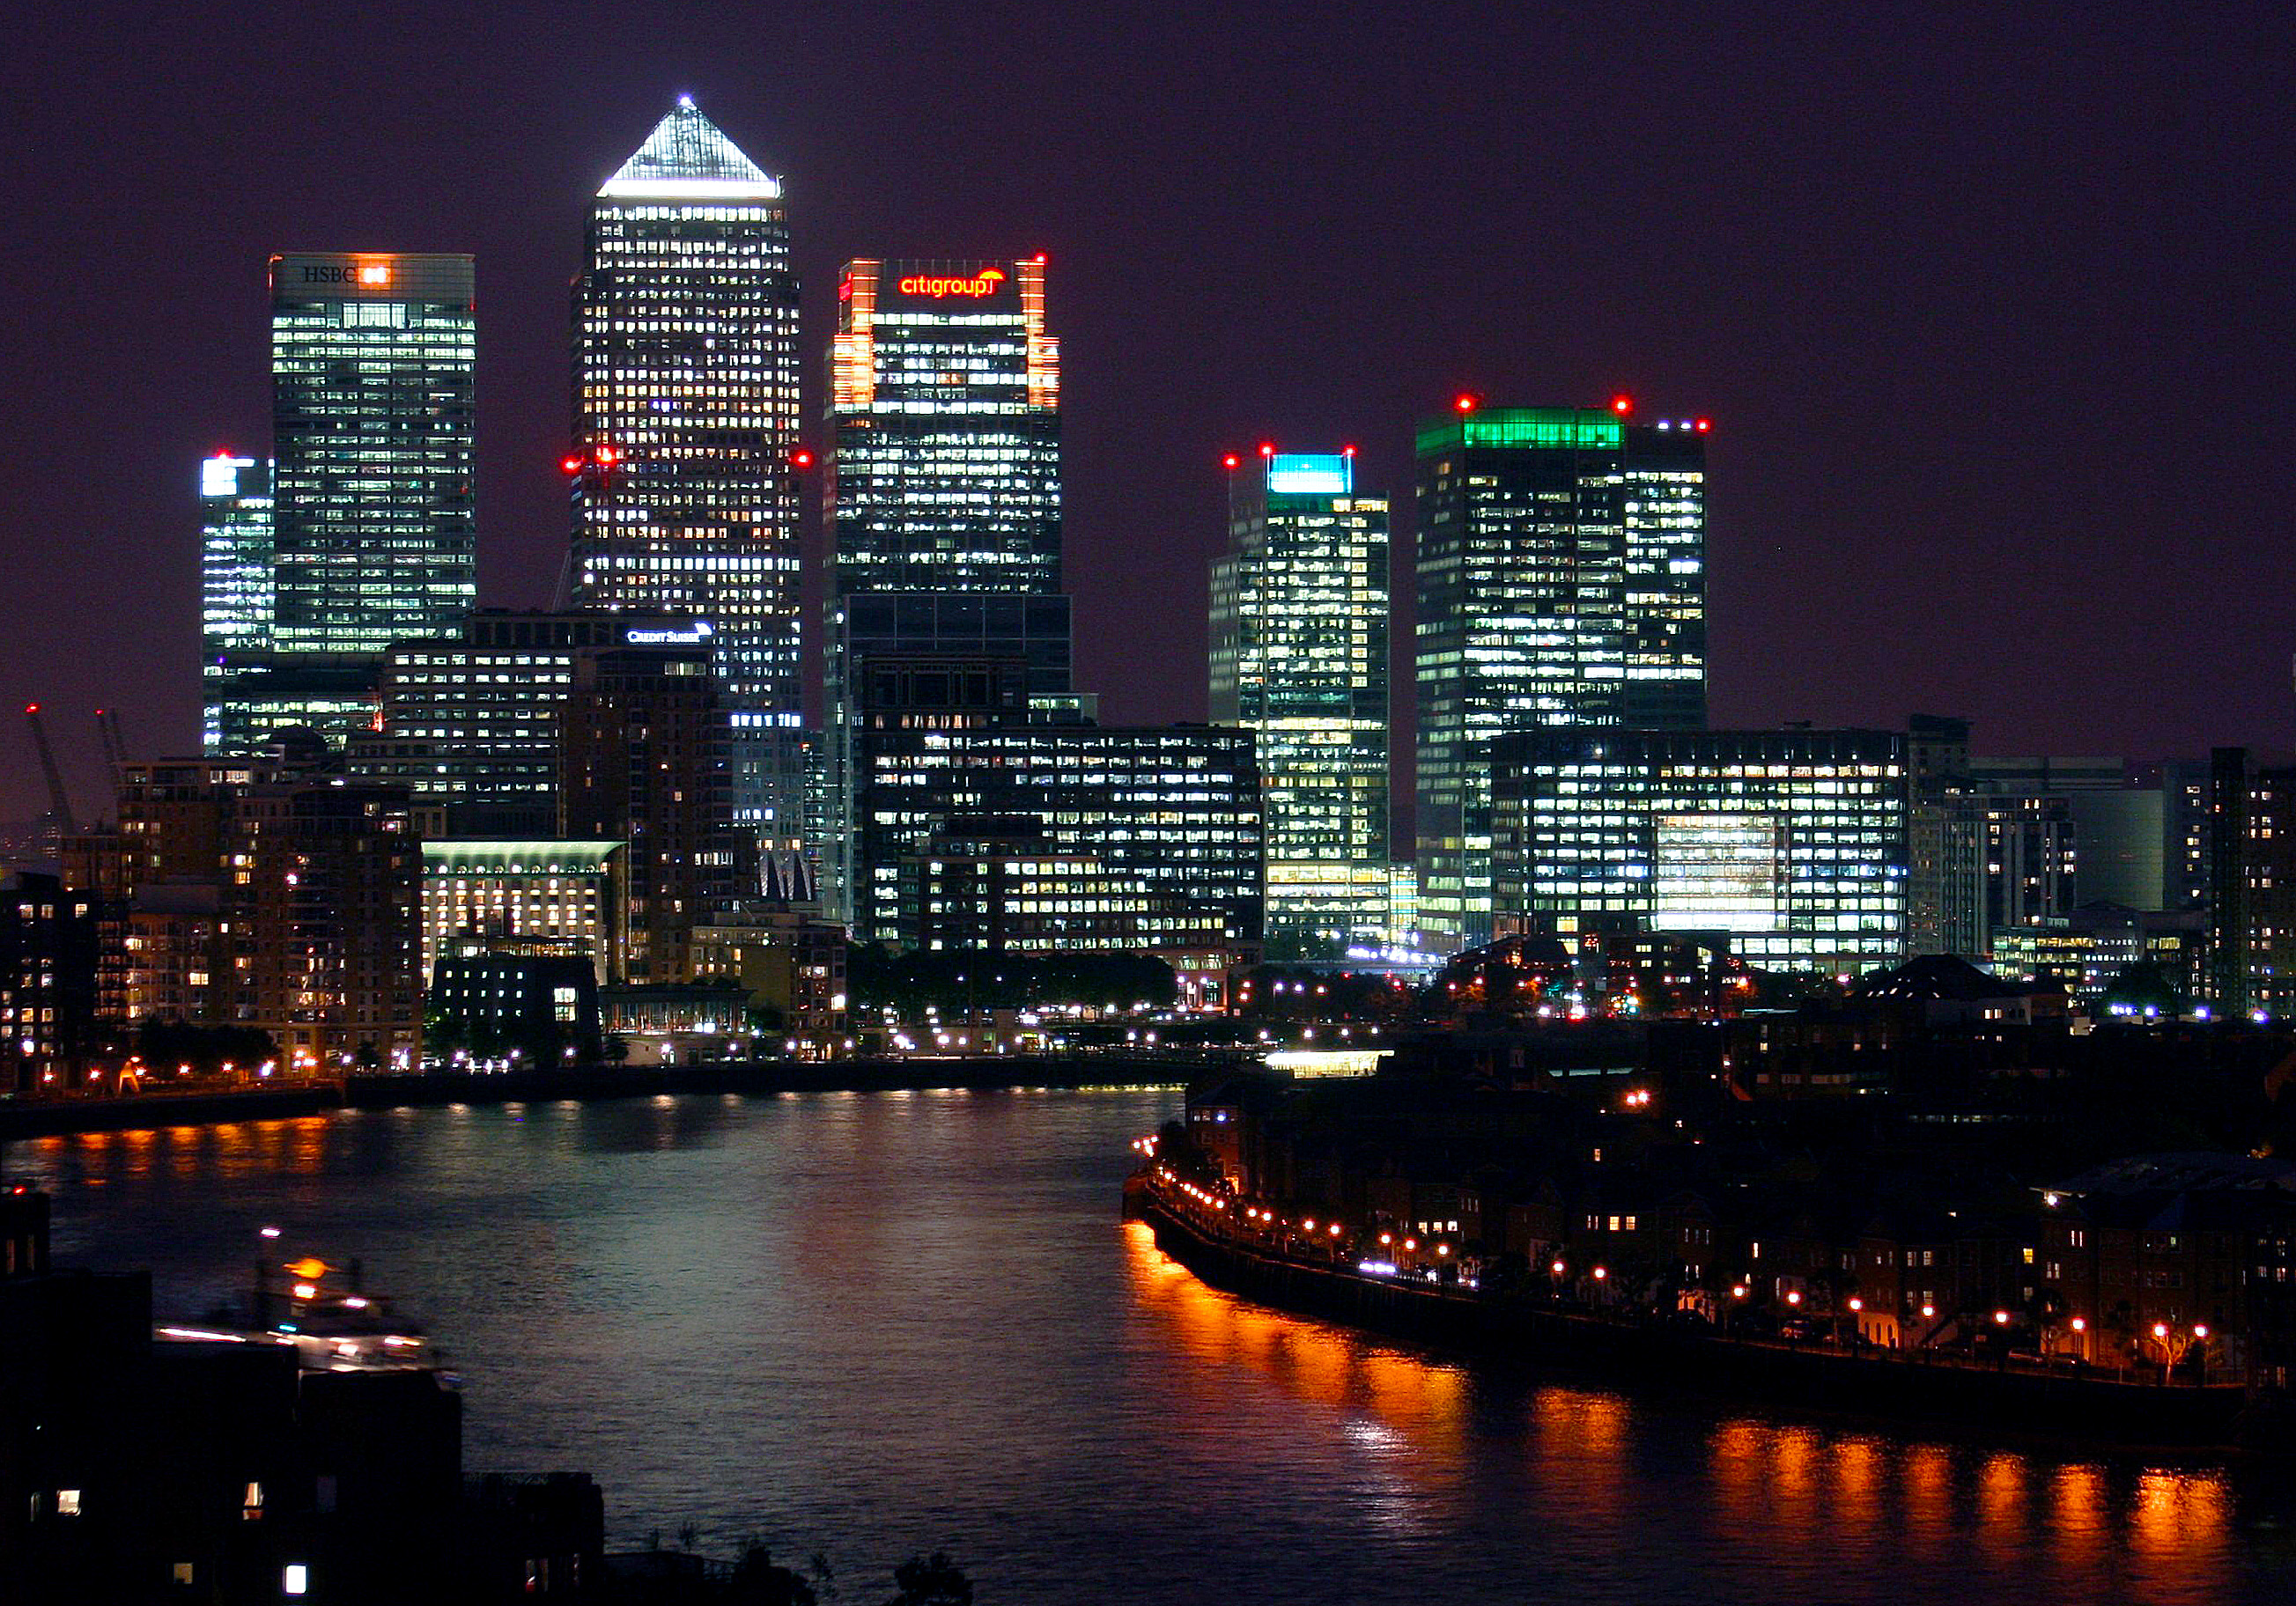 [Image: Canary_Wharf_at_night%2C_from_Shadwell_cropped.jpg]